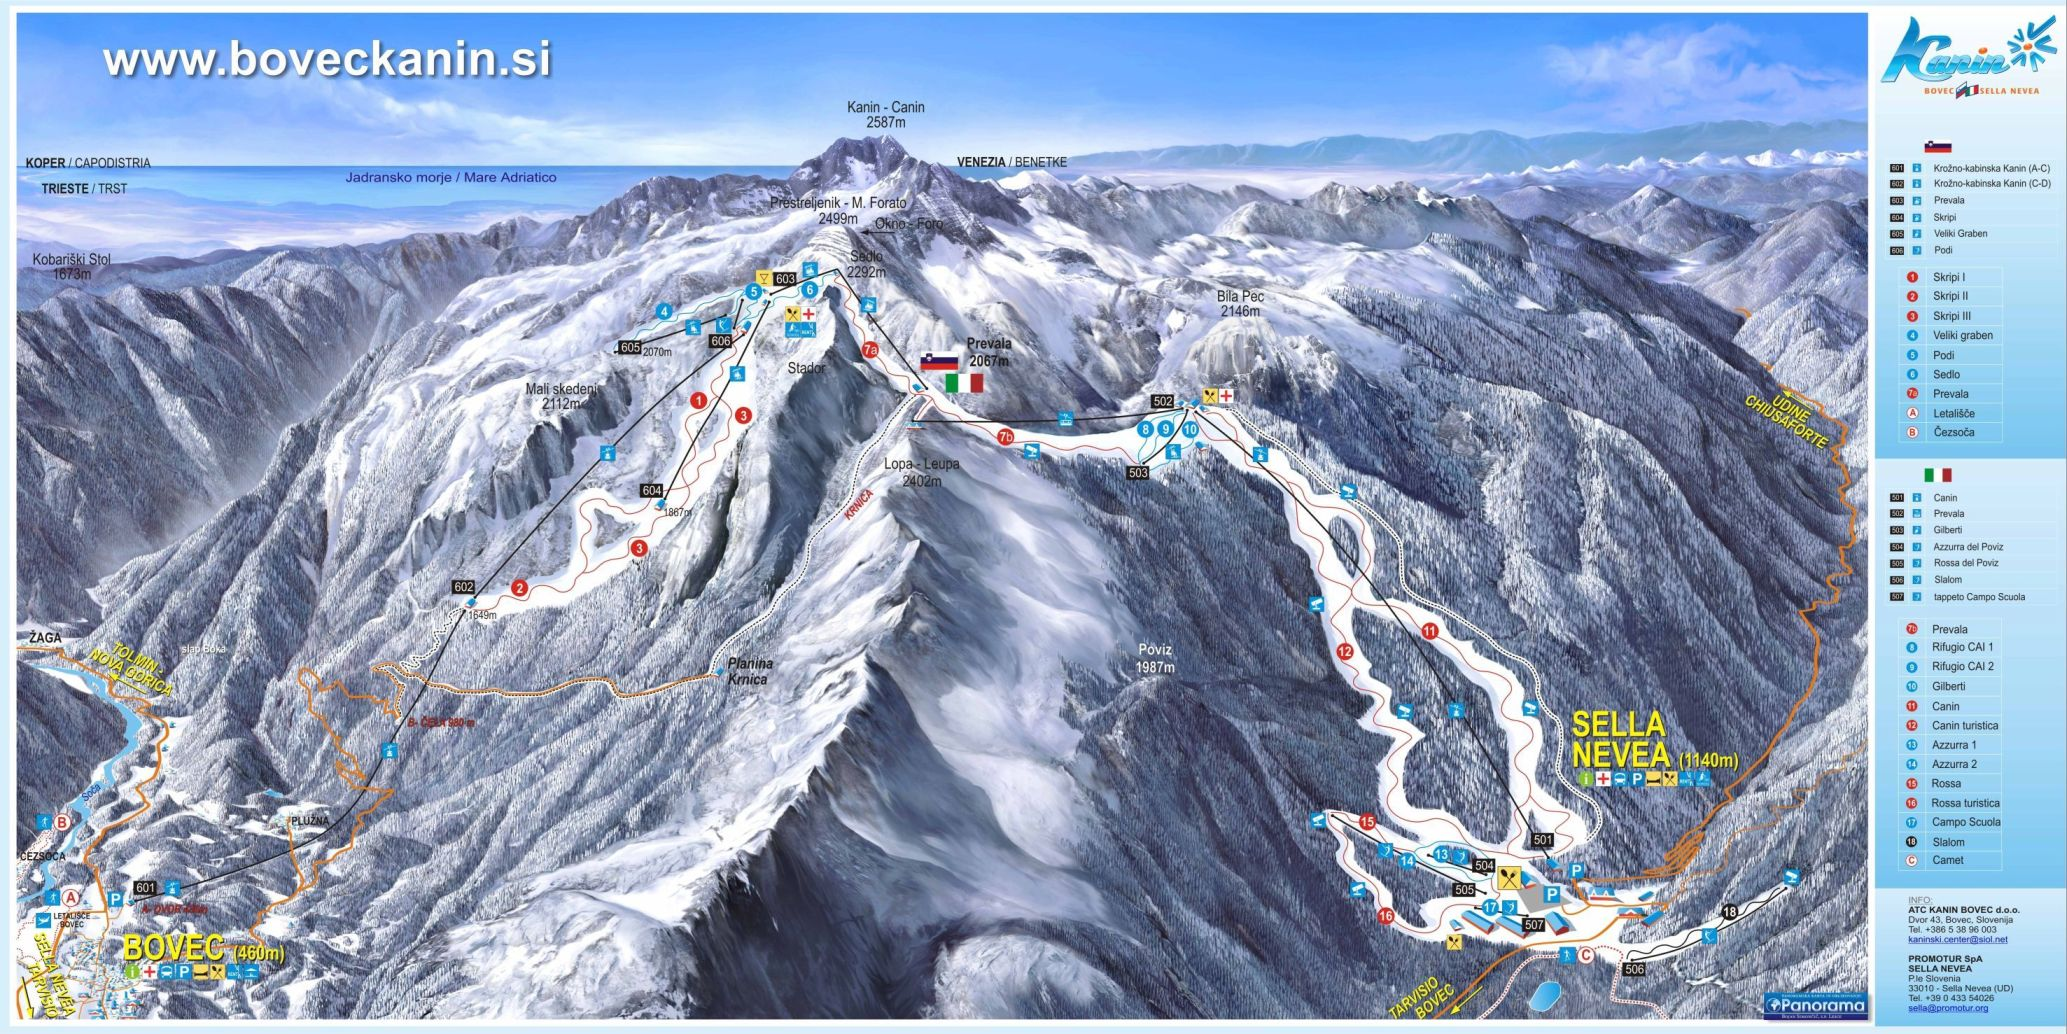 Ski Resorts In Slovenia The Latest On Whats Happening On The Piste In Slovenia